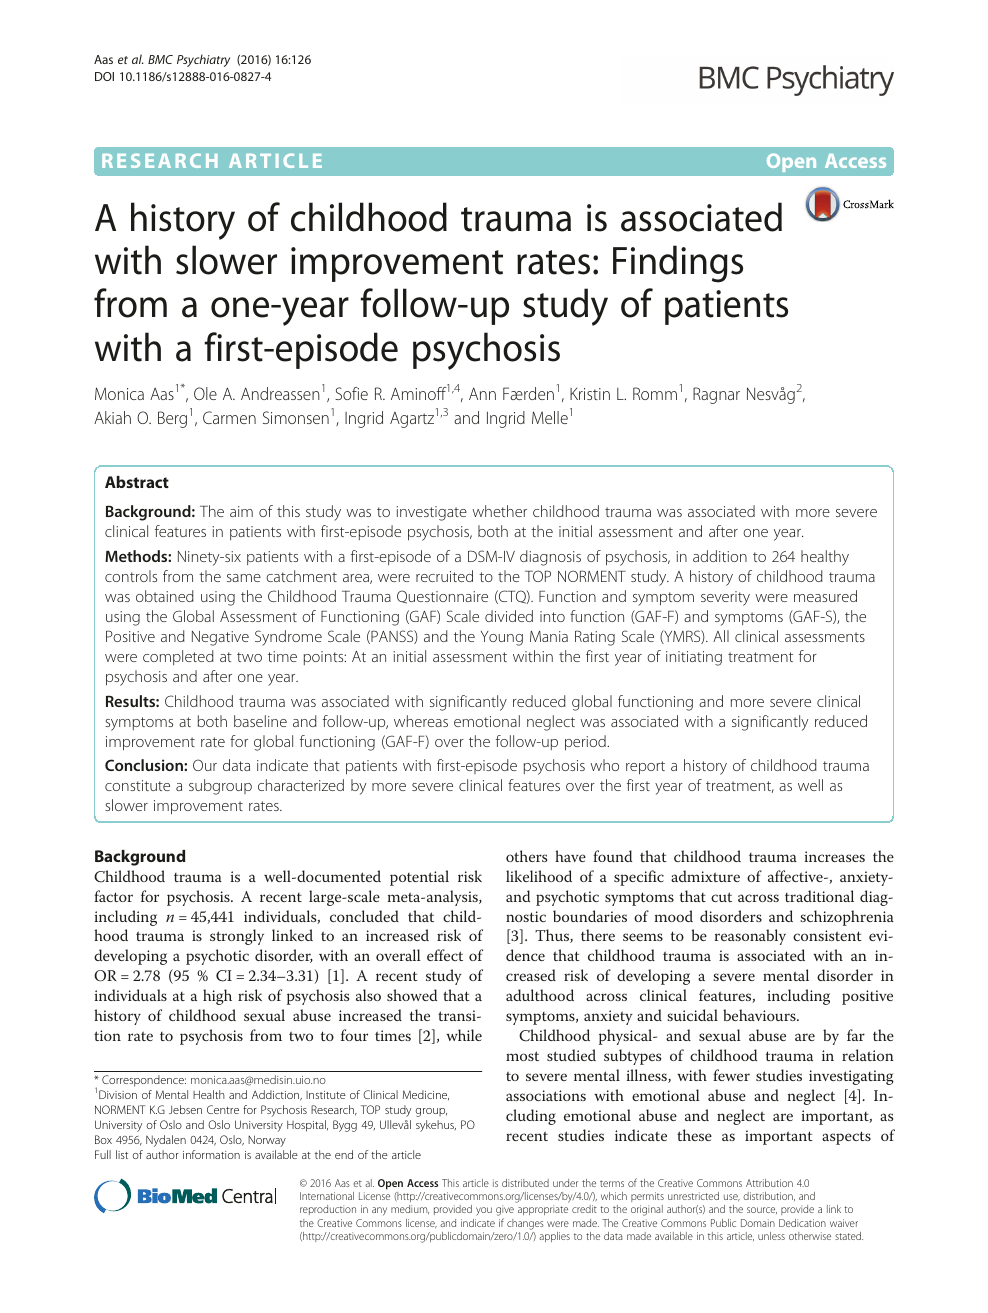 A history of childhood trauma is associated with slower improvement